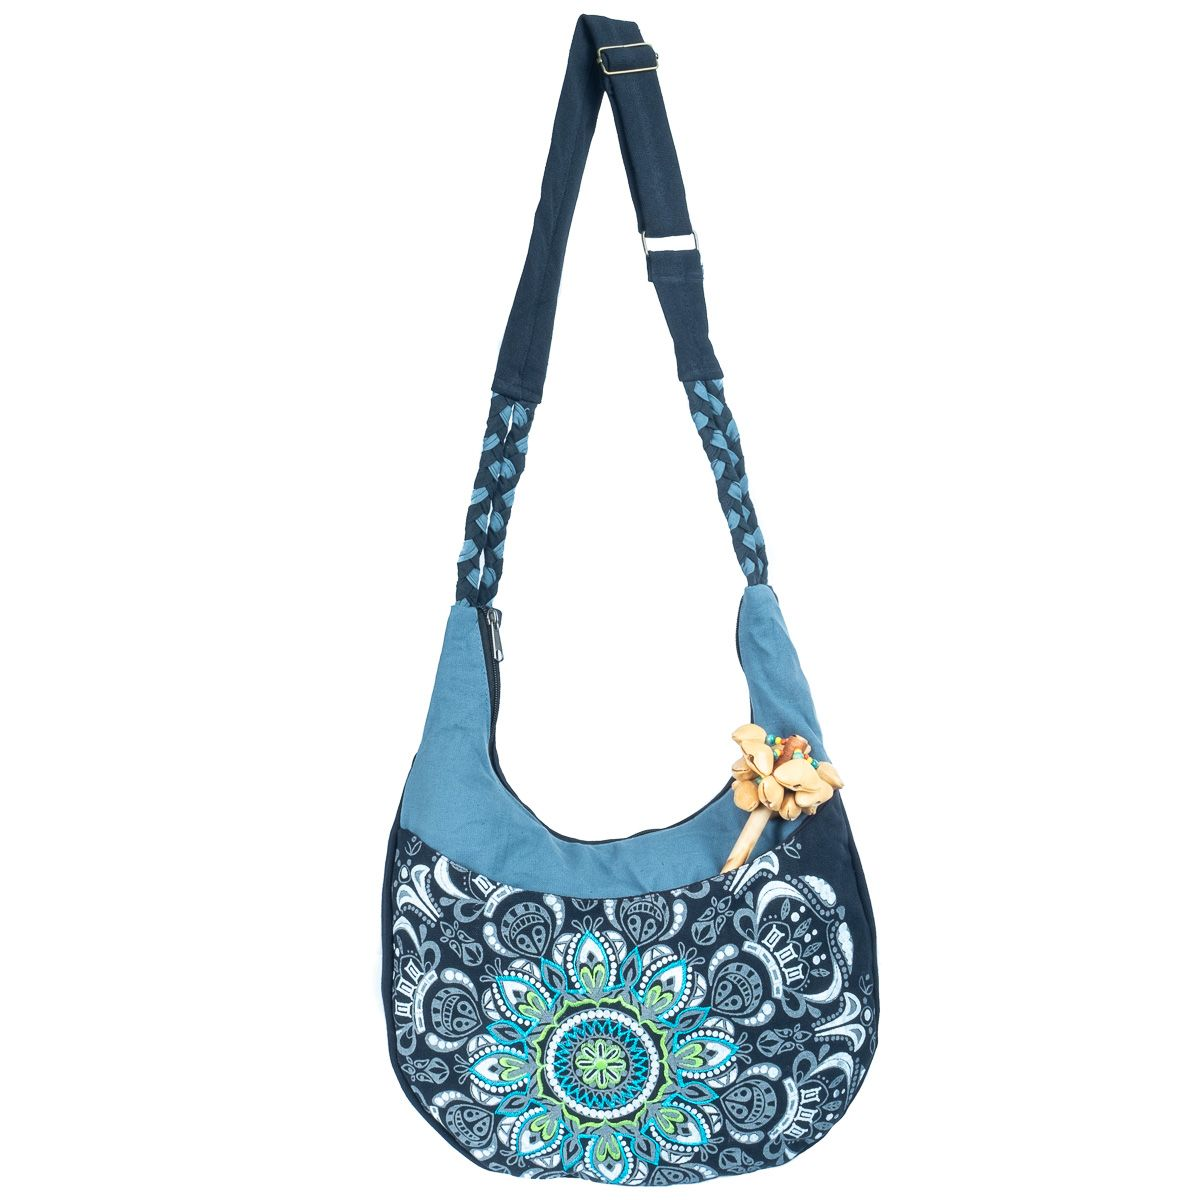 Strings Mandala Flower 100% Cotton Handmade Nepal, Boho Ethno Festival Bag - Ethnic-Tara